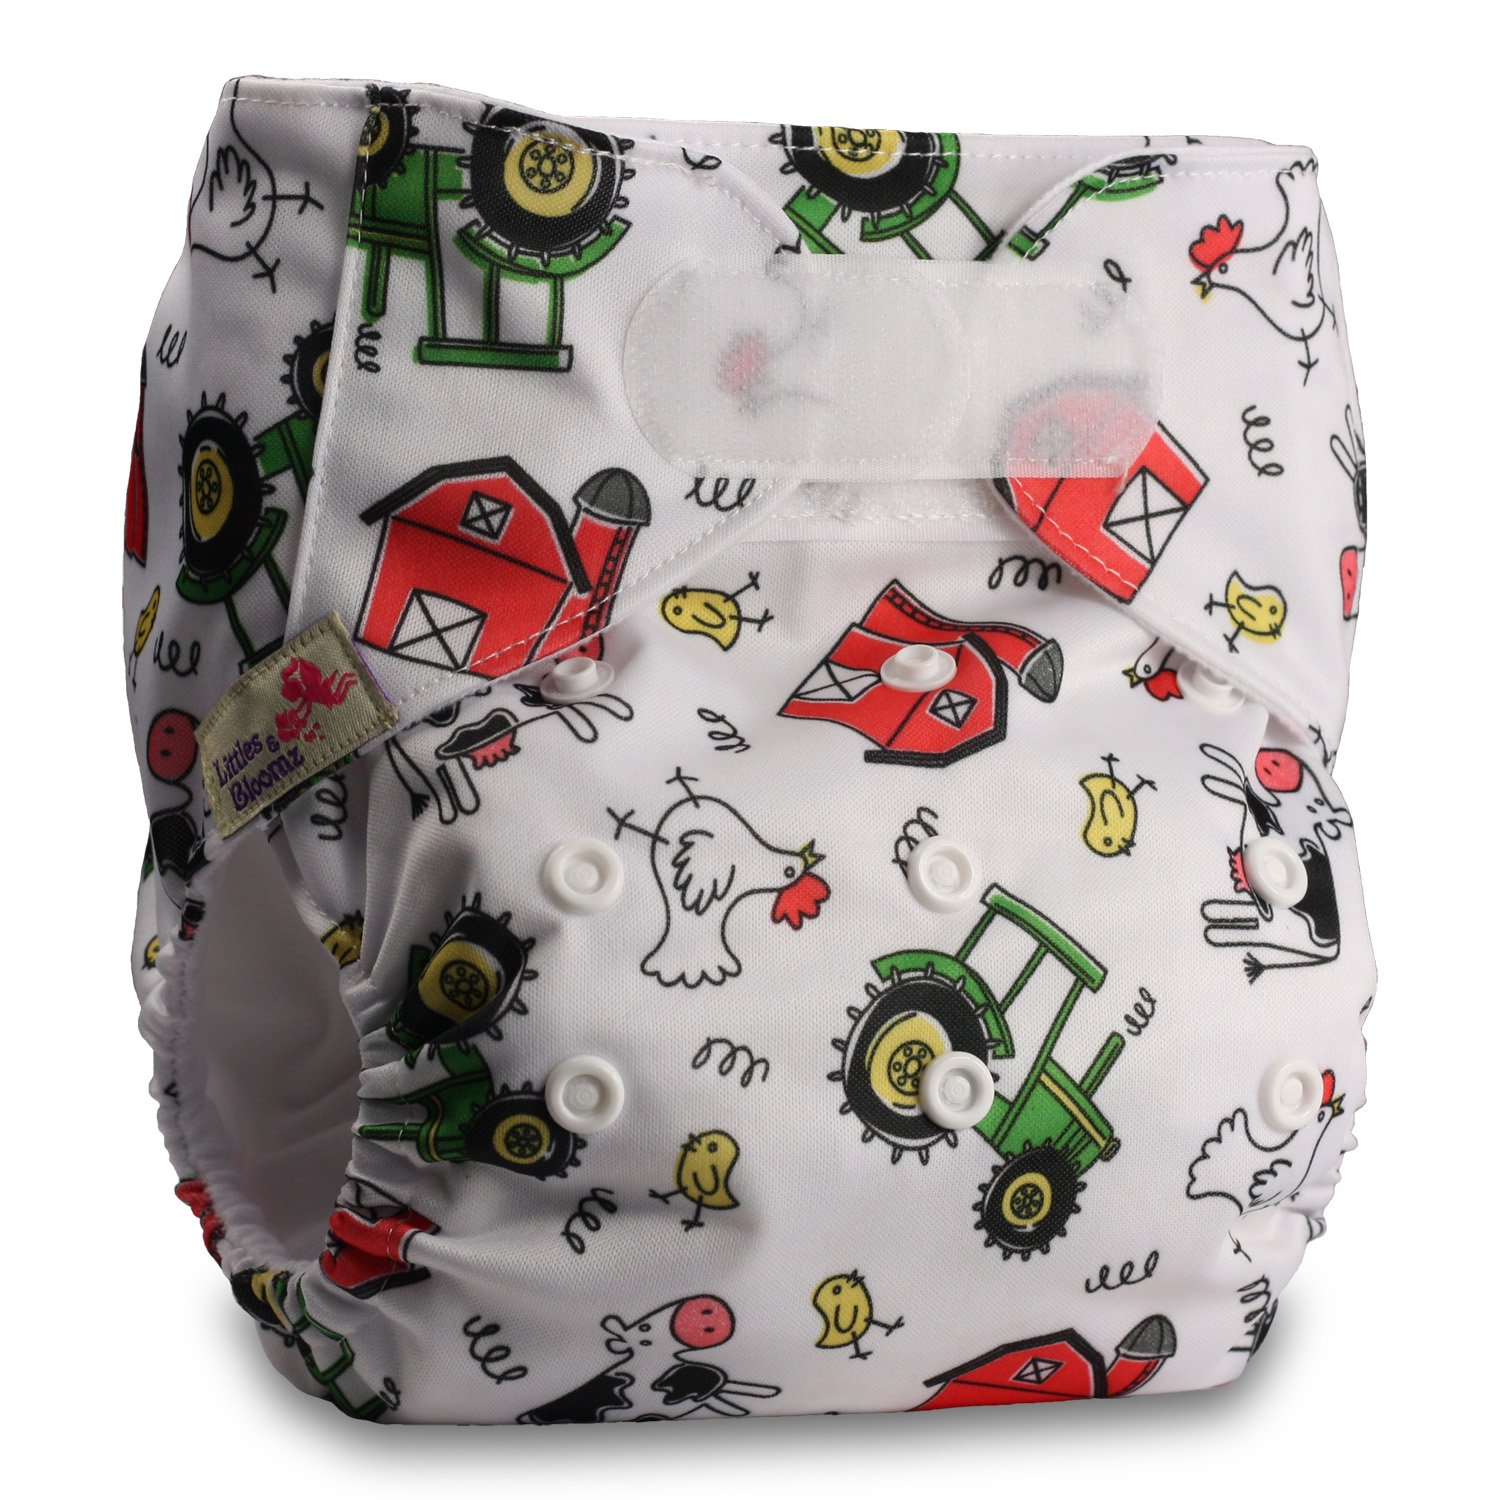 Pattern 56 Fastener: Hook-Loop Reusable Pocket Cloth Nappy Set of 1 Littles /& Bloomz with 2 Bamboo Inserts